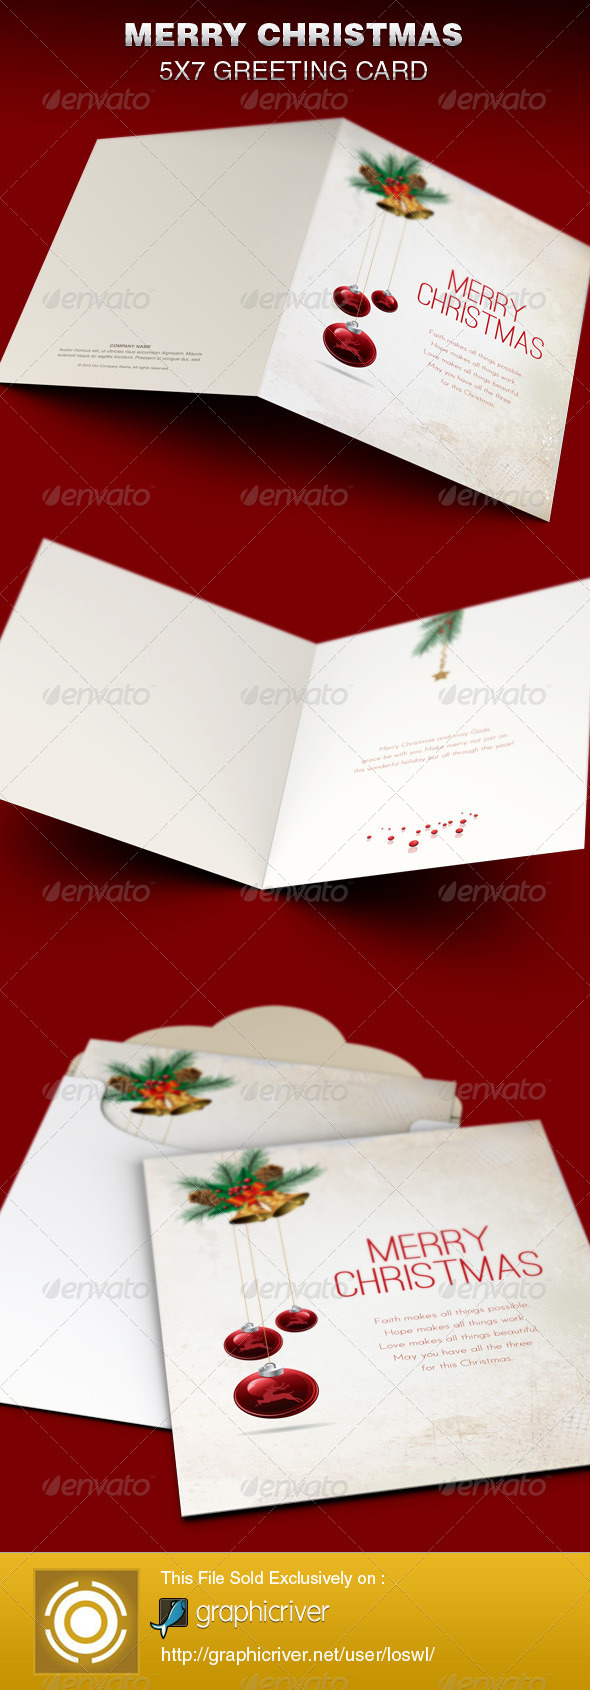 Merry Christmas Greeting Card Template - Greeting Cards Cards & Invites